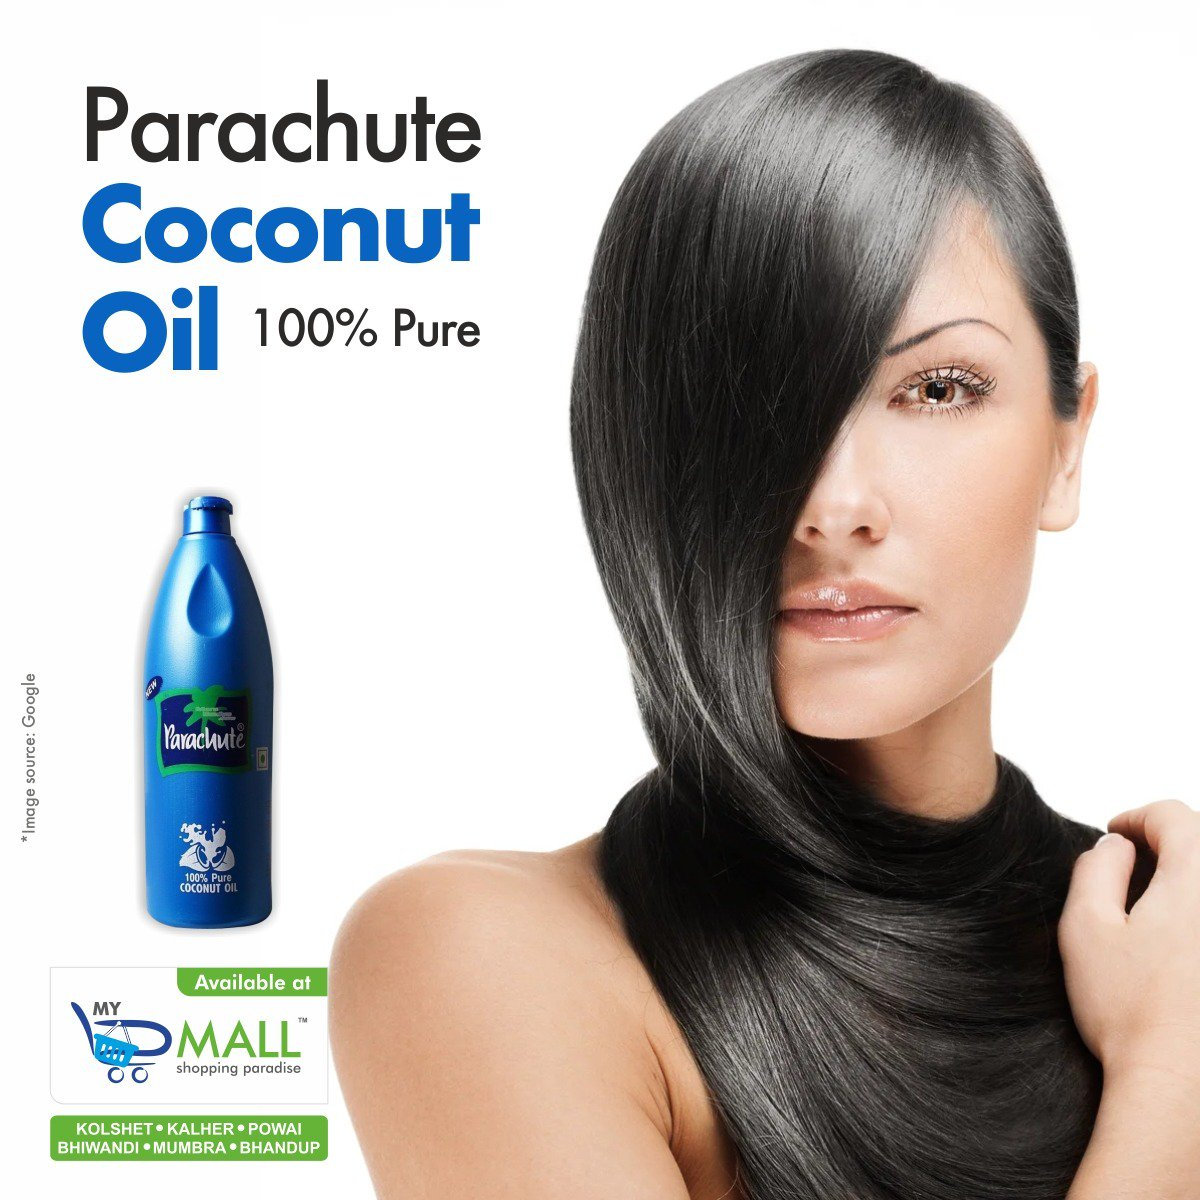 Parachutecoconutoil tagged Tweets and Download Twitter MP4